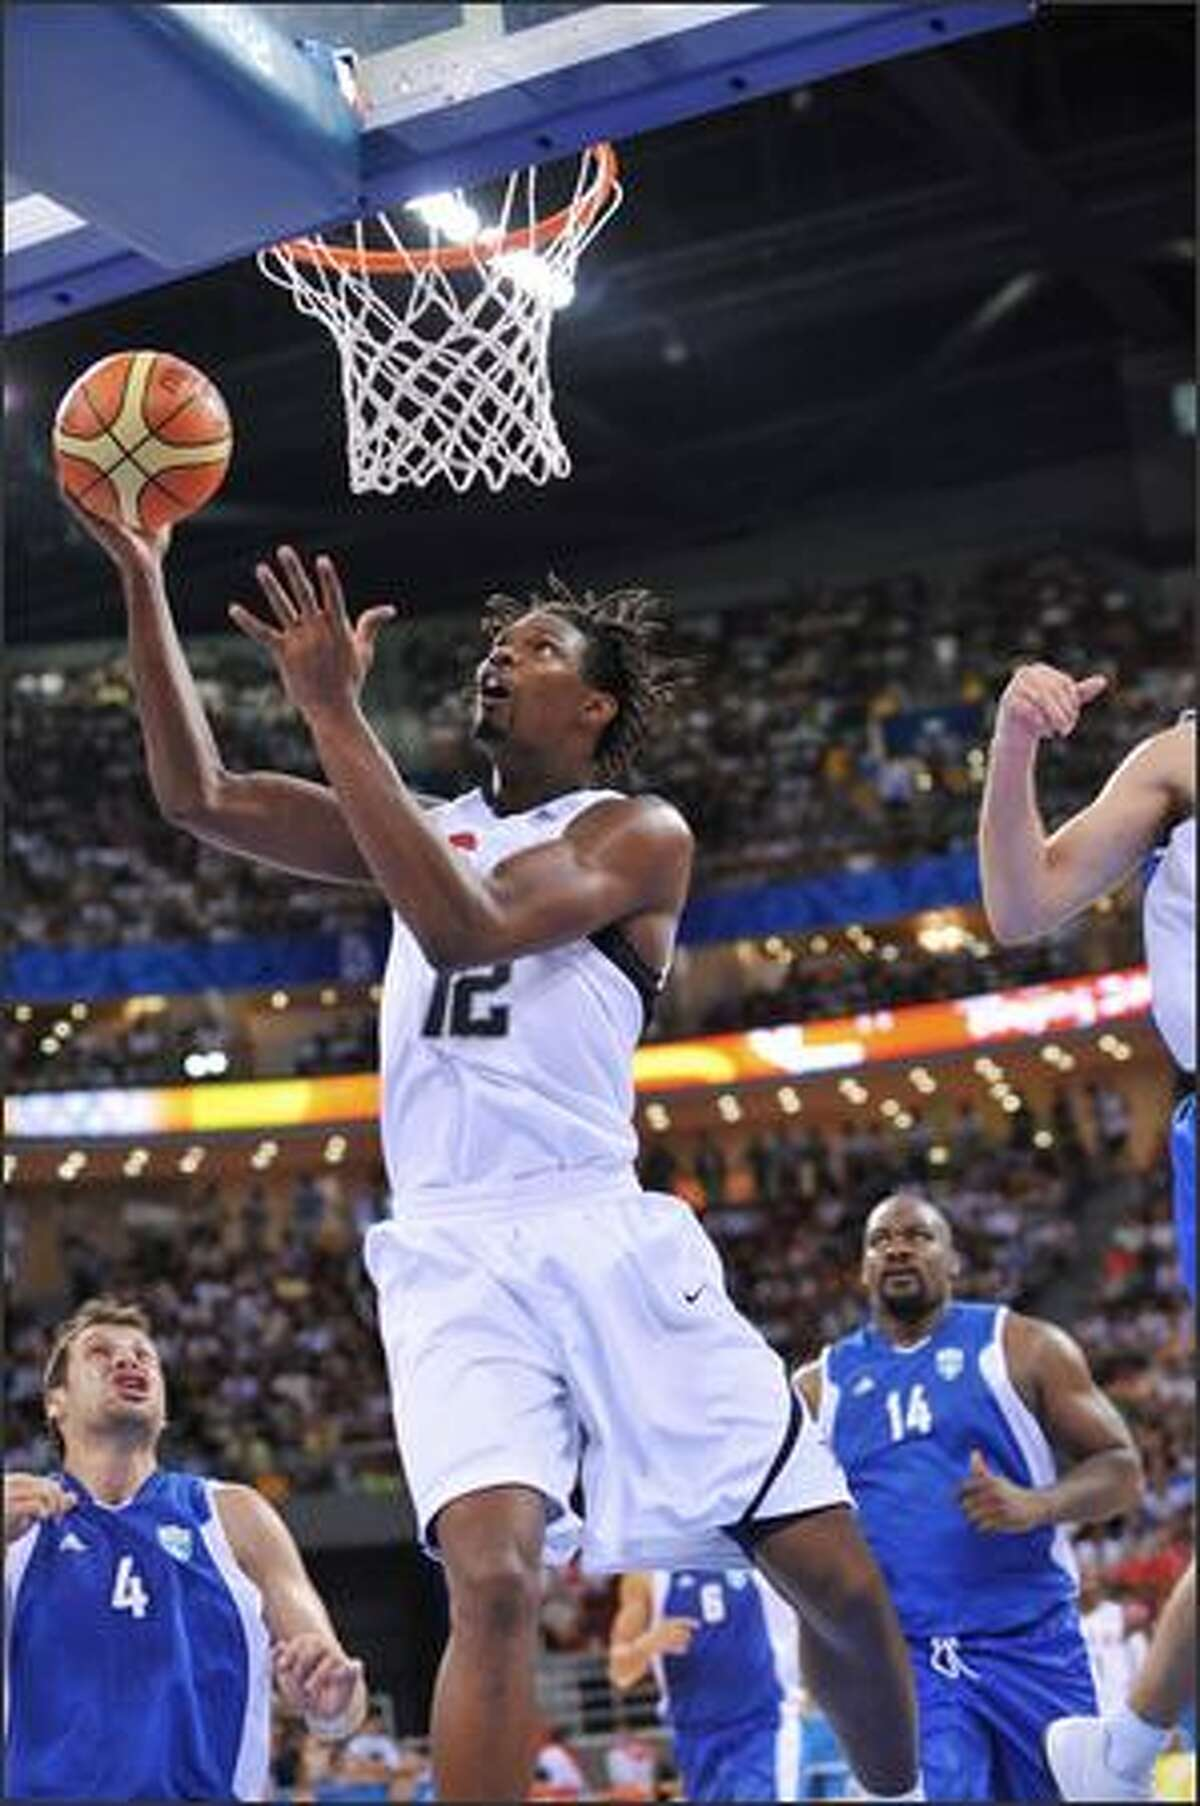 Chris Bosh #12 of the U.S. Men's Senior National Team shoots against Greece during a men's preliminary basketball game at the 2008 Beijing Olympic Games at the Beijing Olympic Basketball gymnasium on Thursday in Beijing, China.